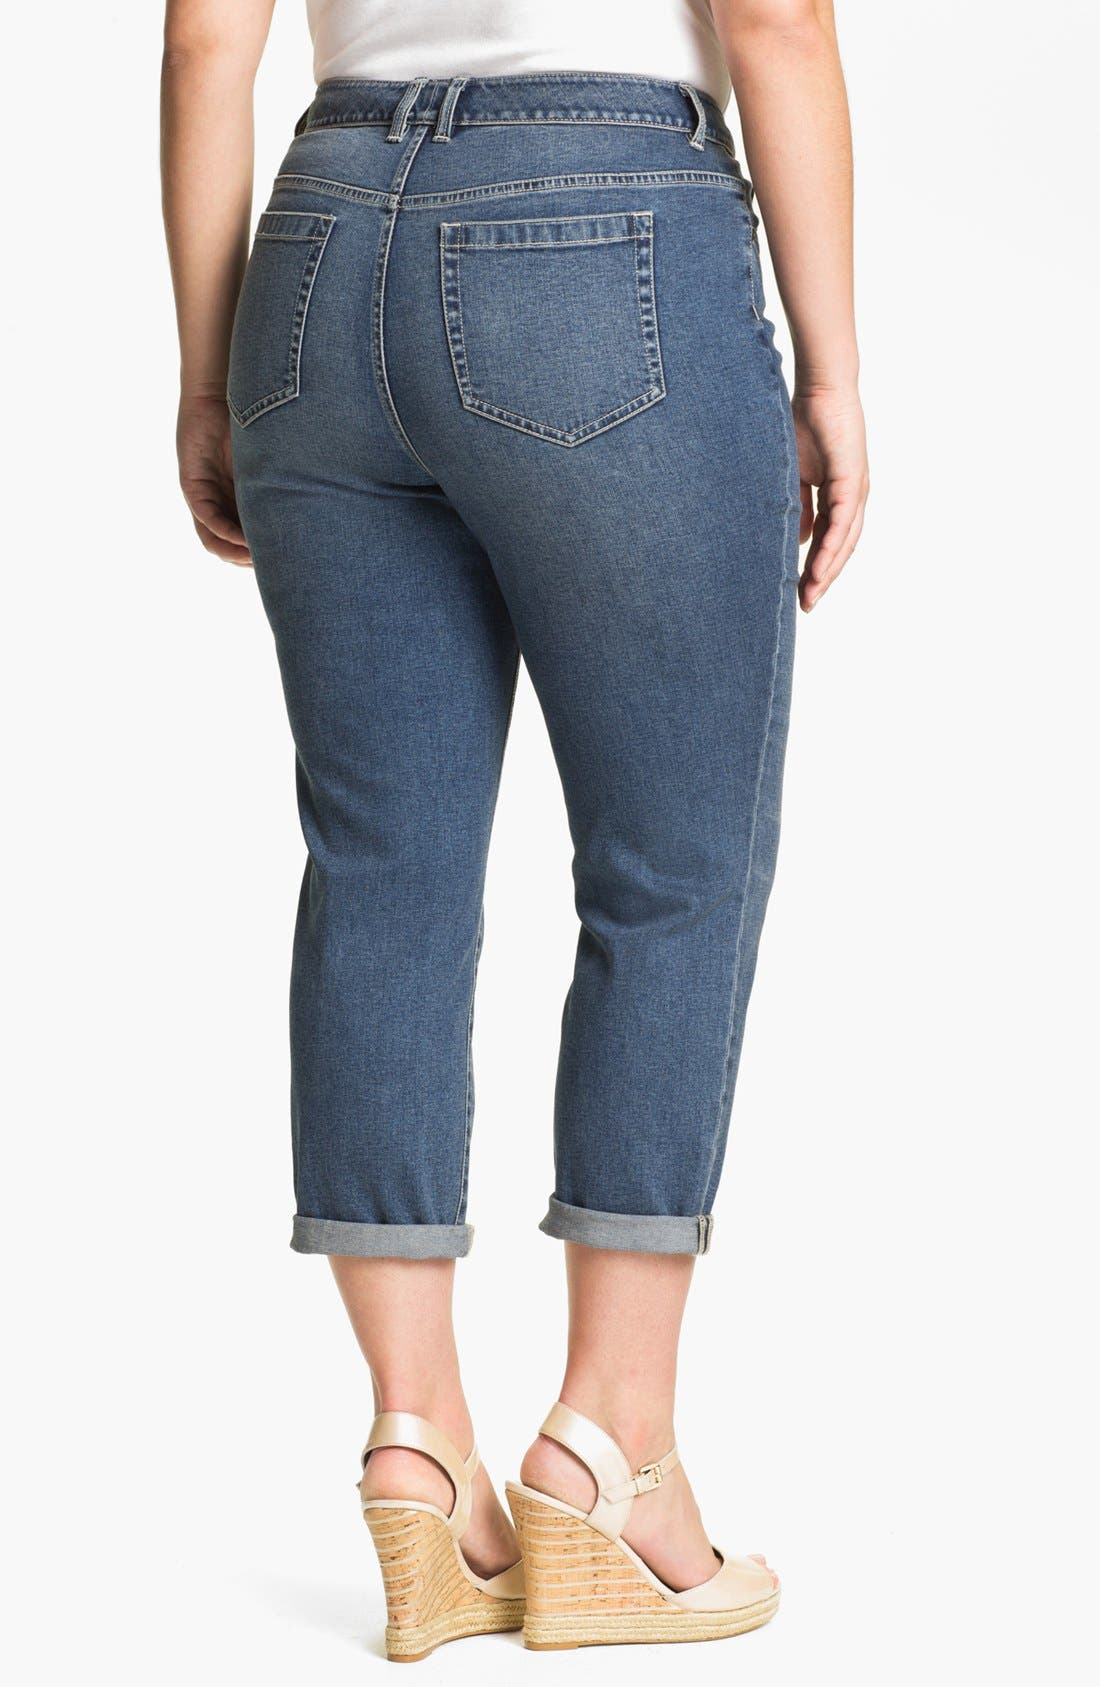 Alternate Image 2  - Two by Vince Camuto Cuffed Boyfriend Jeans (Plus Size)